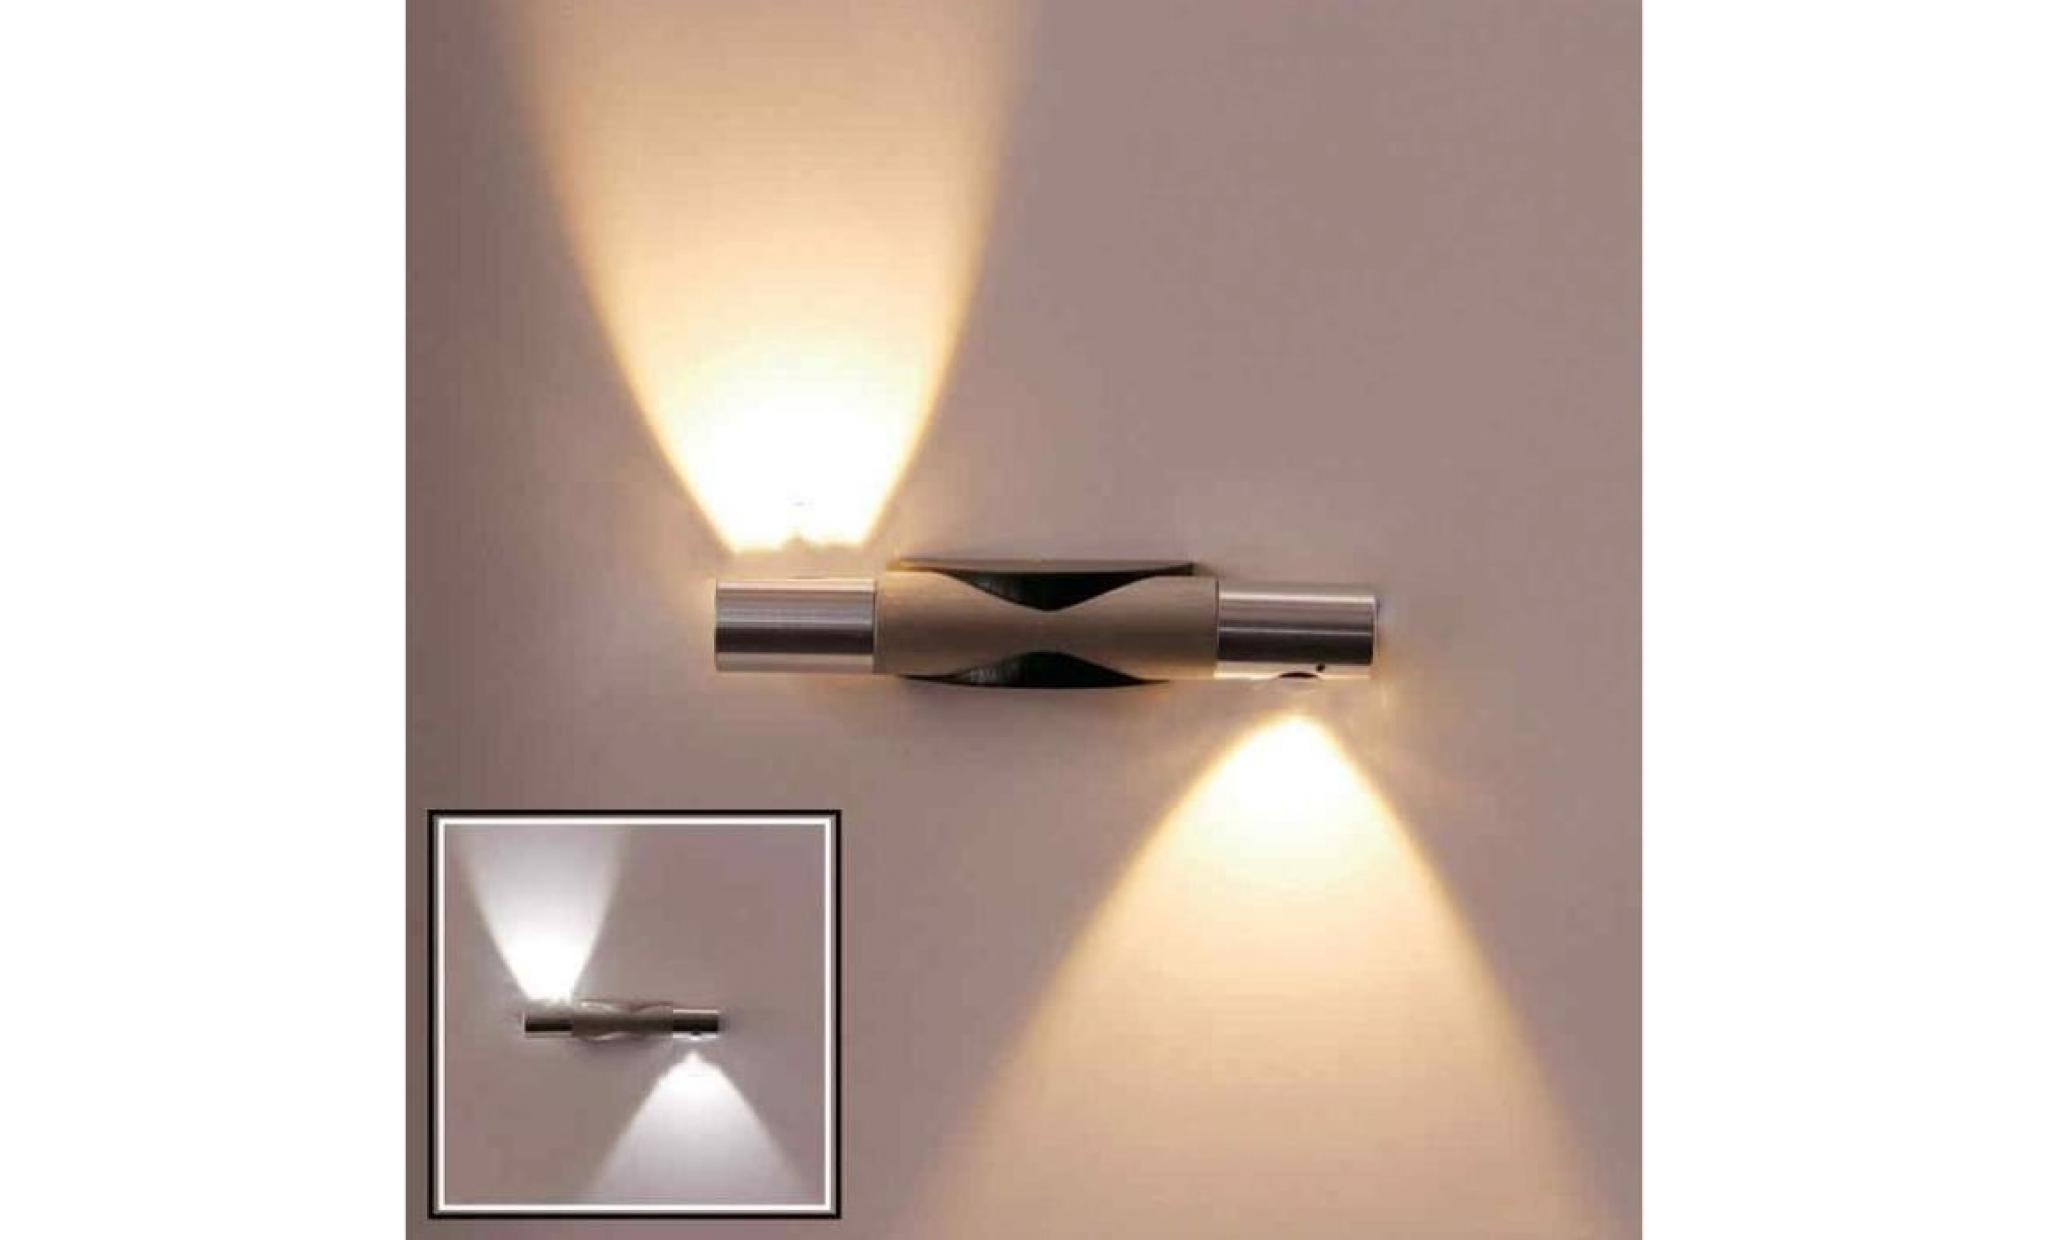 Led lampe applique murale puissance 2w clairage for Applique murale design salon